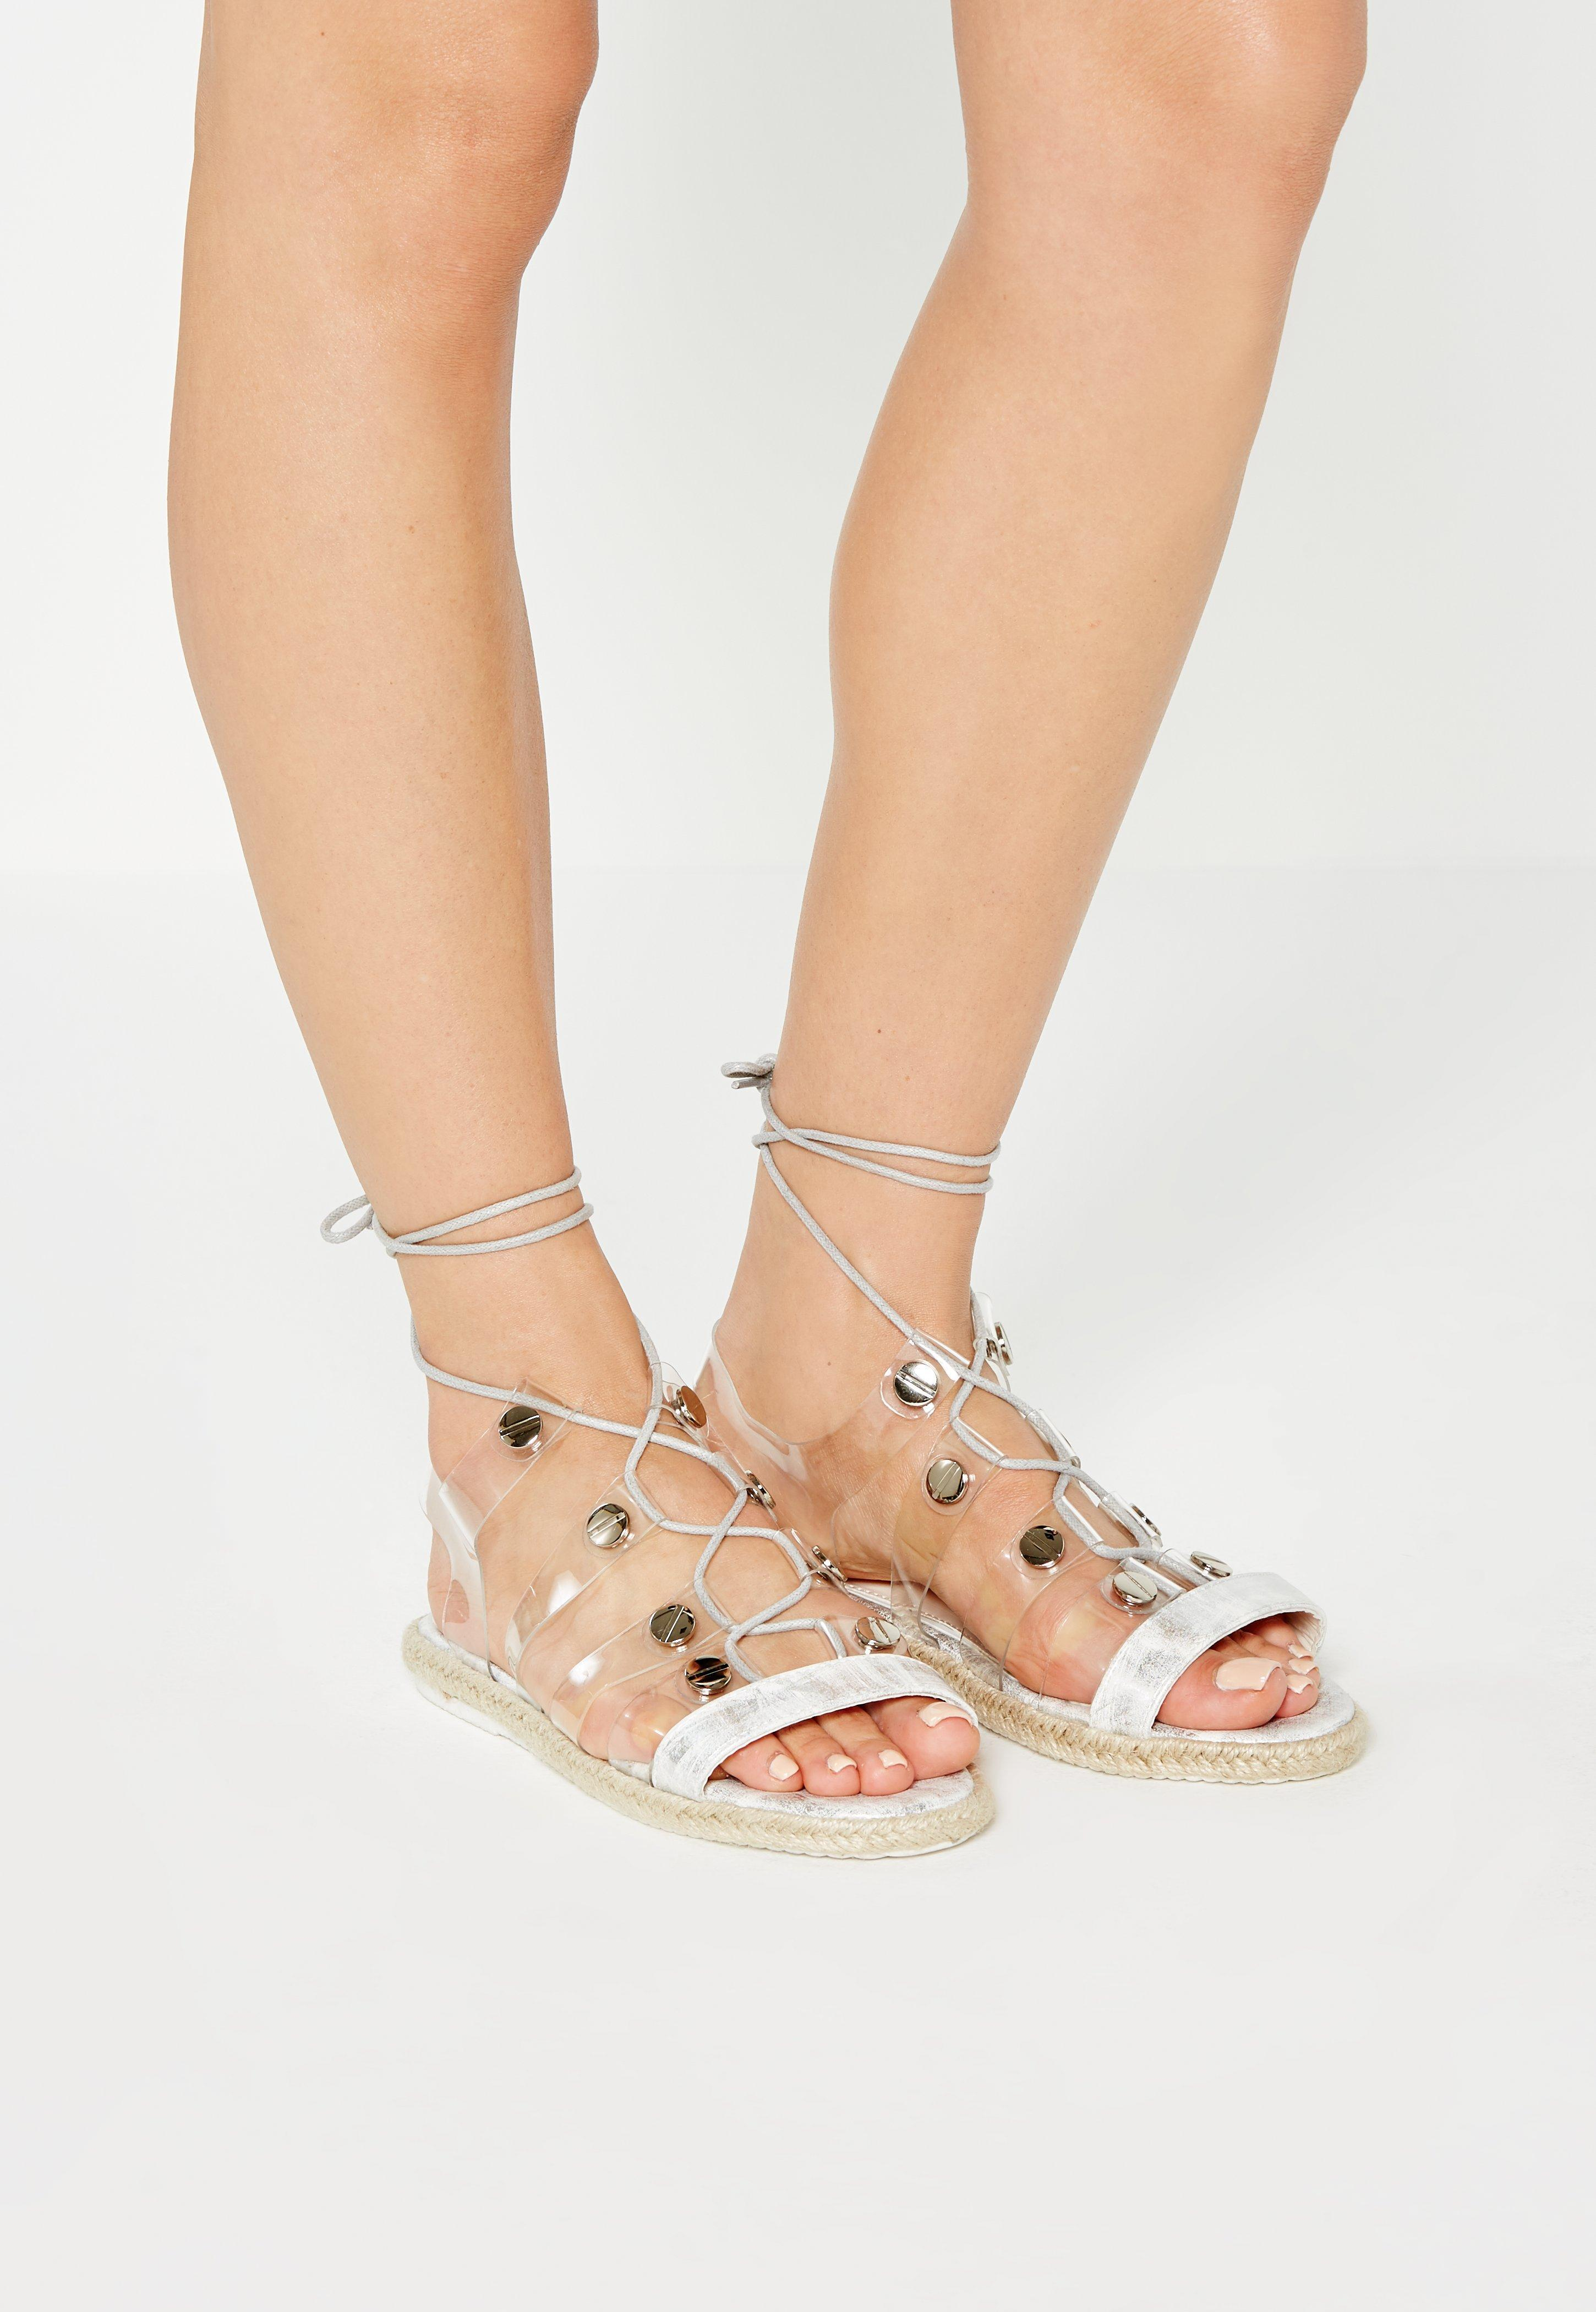 2d0e7a7cafda6 Missguided - White Transparent Straps Flat Sandals - Lyst. View fullscreen